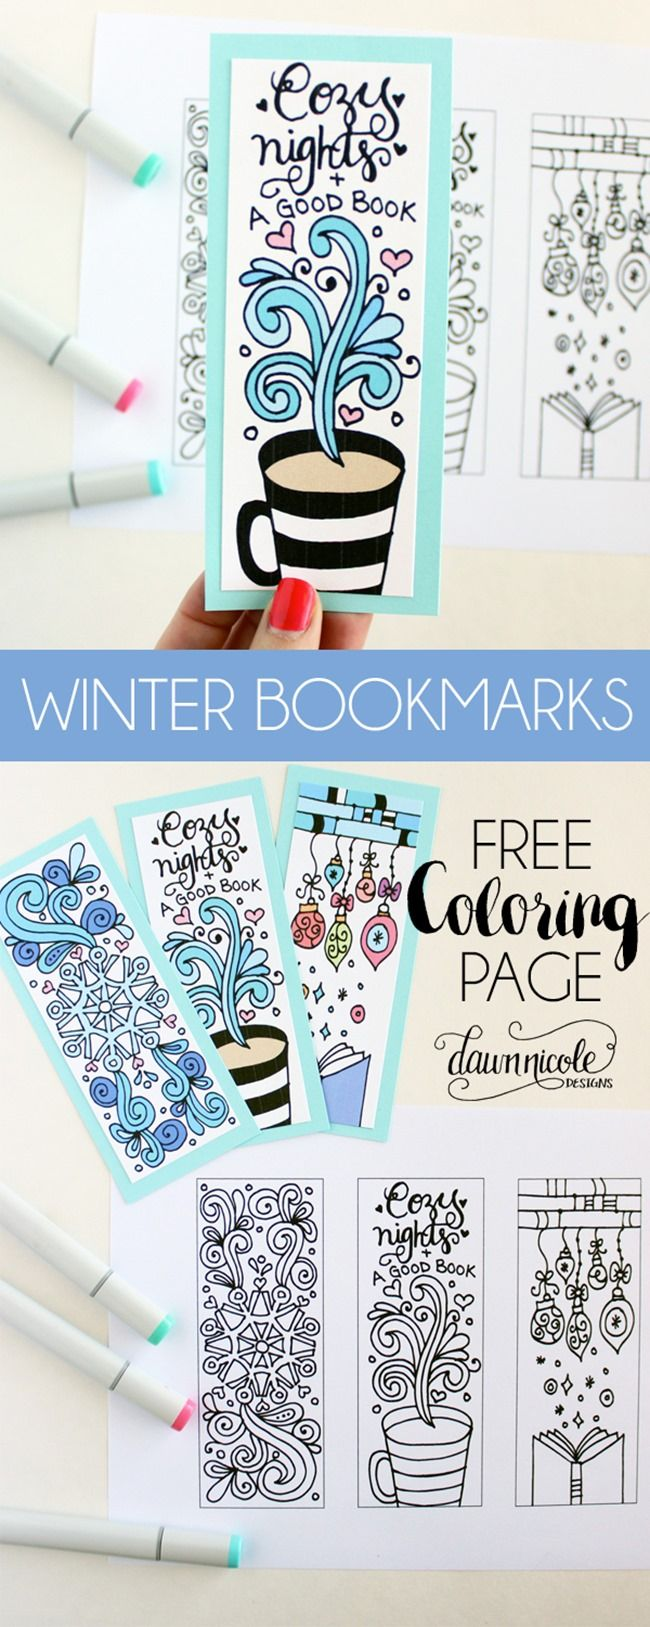 Christmas Printable Coloring Page - Winter bookmarks   Free Coloring ...